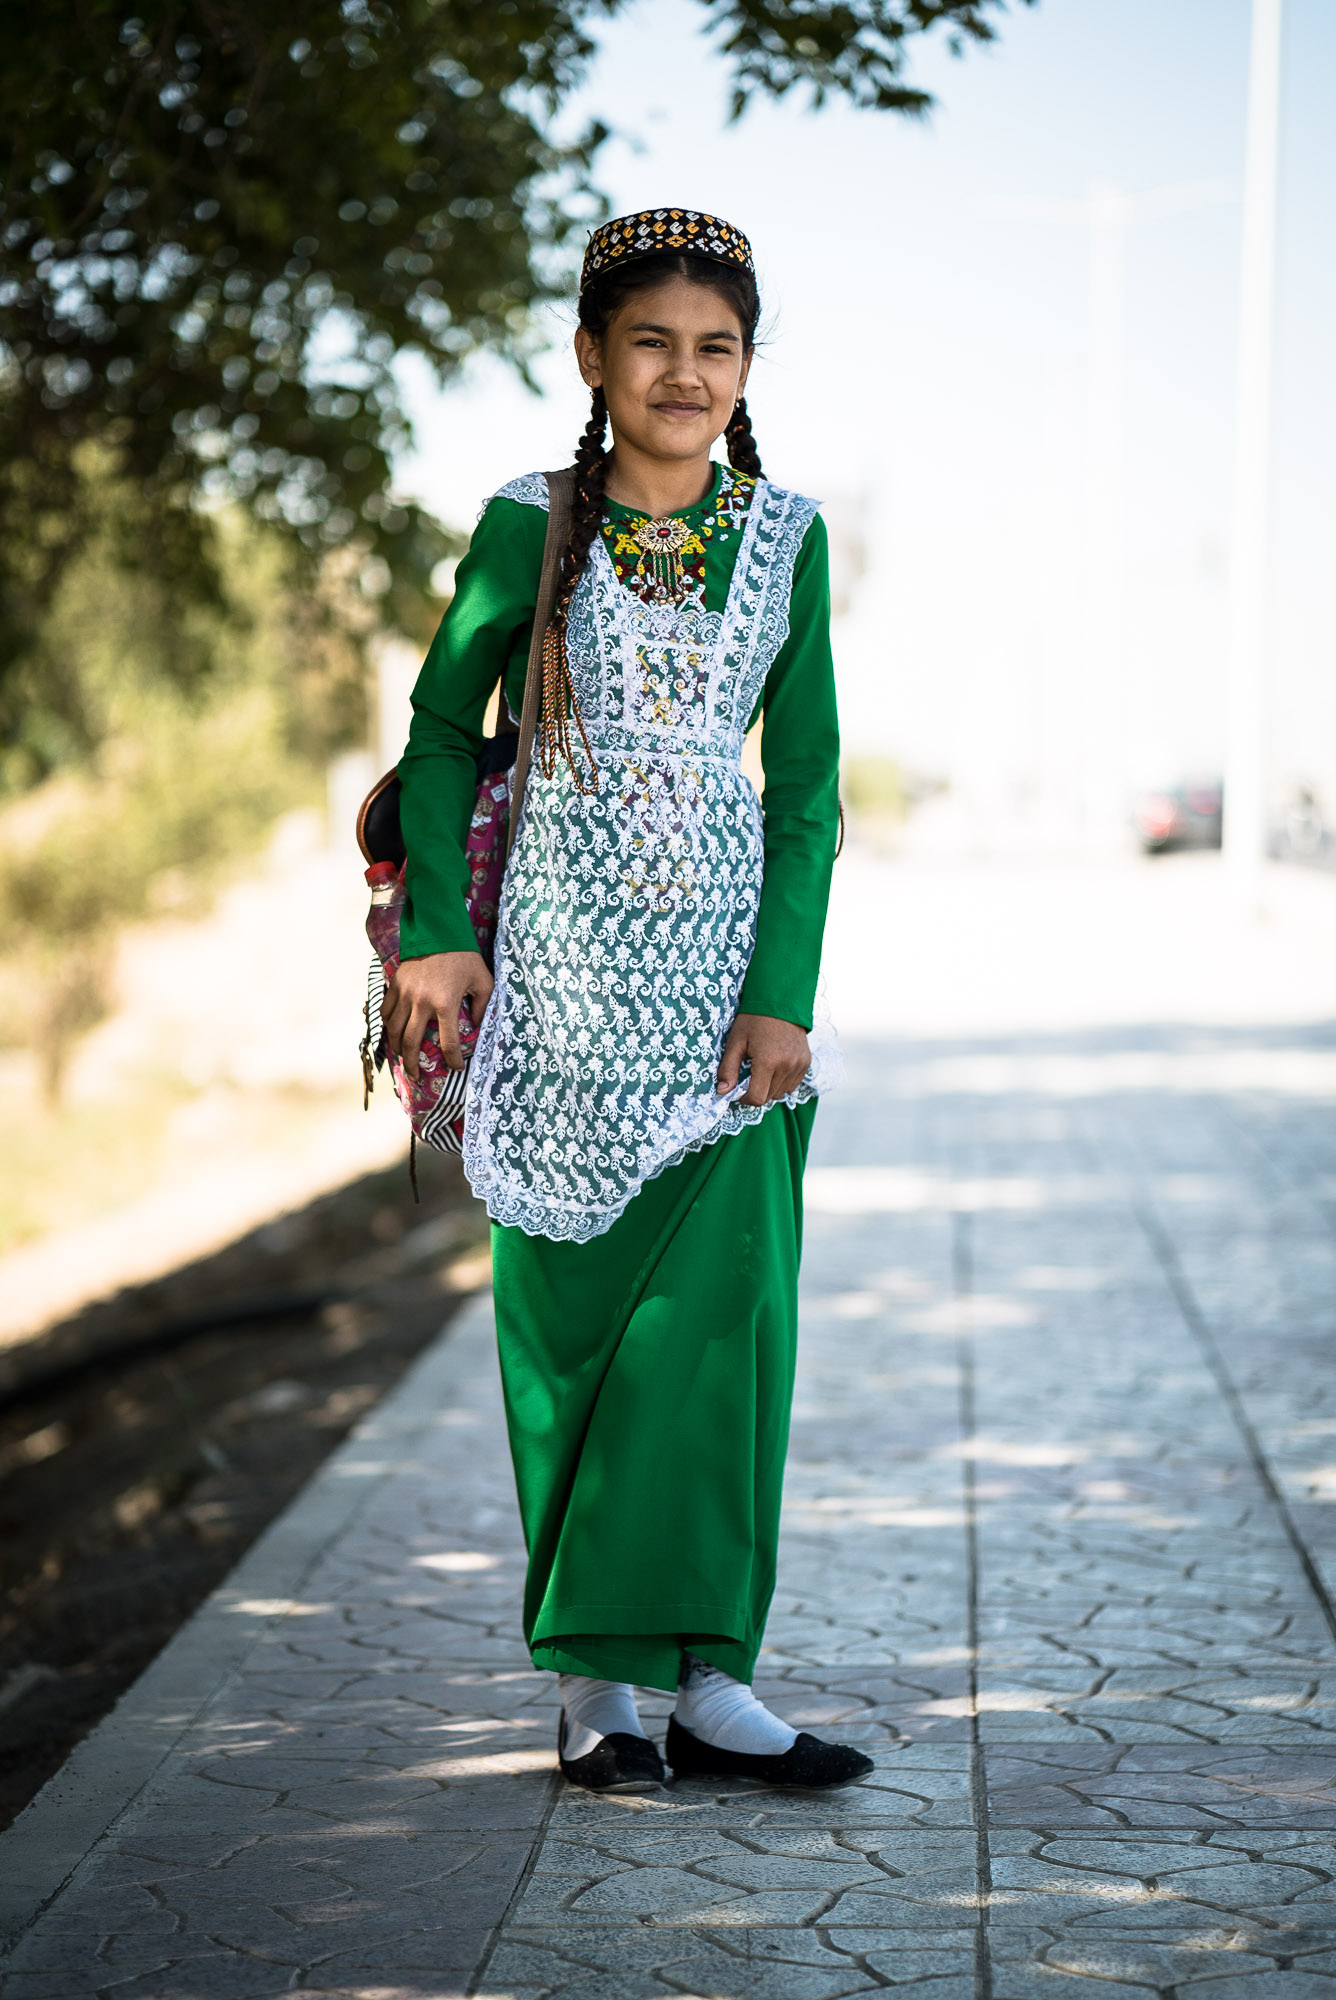 Turkmen school girl